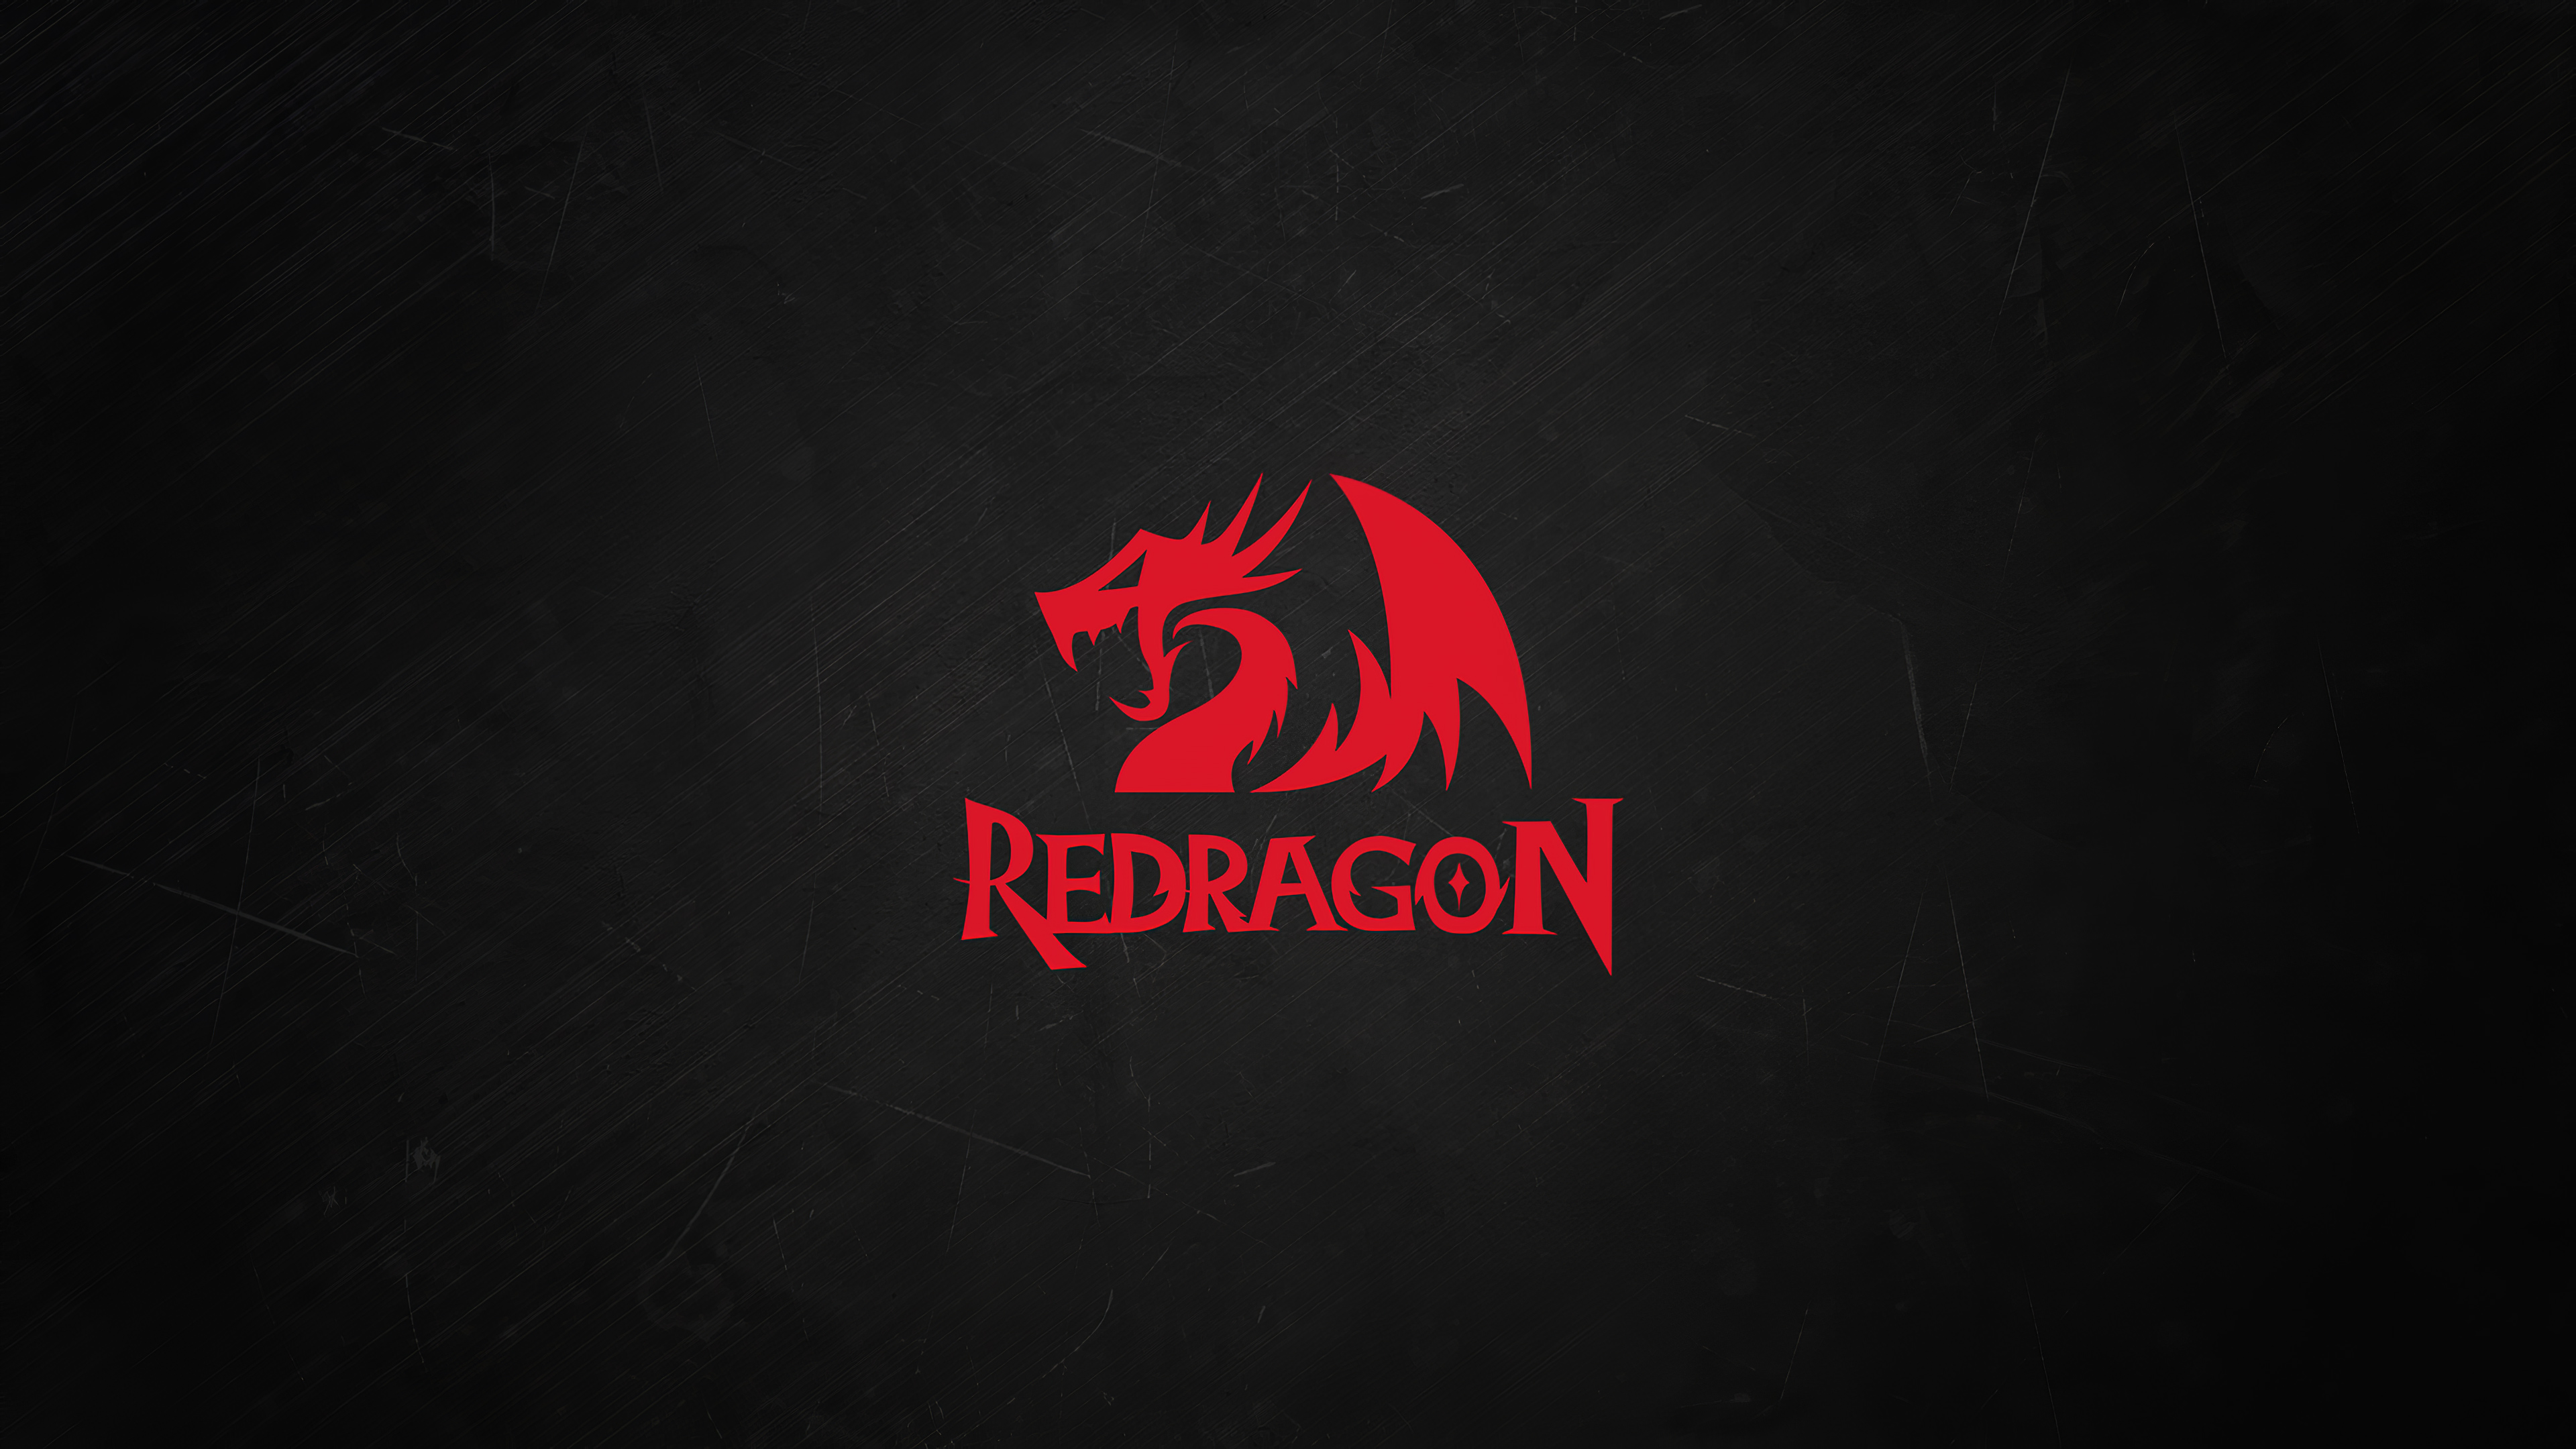 red dragon minimal logo 4k bs